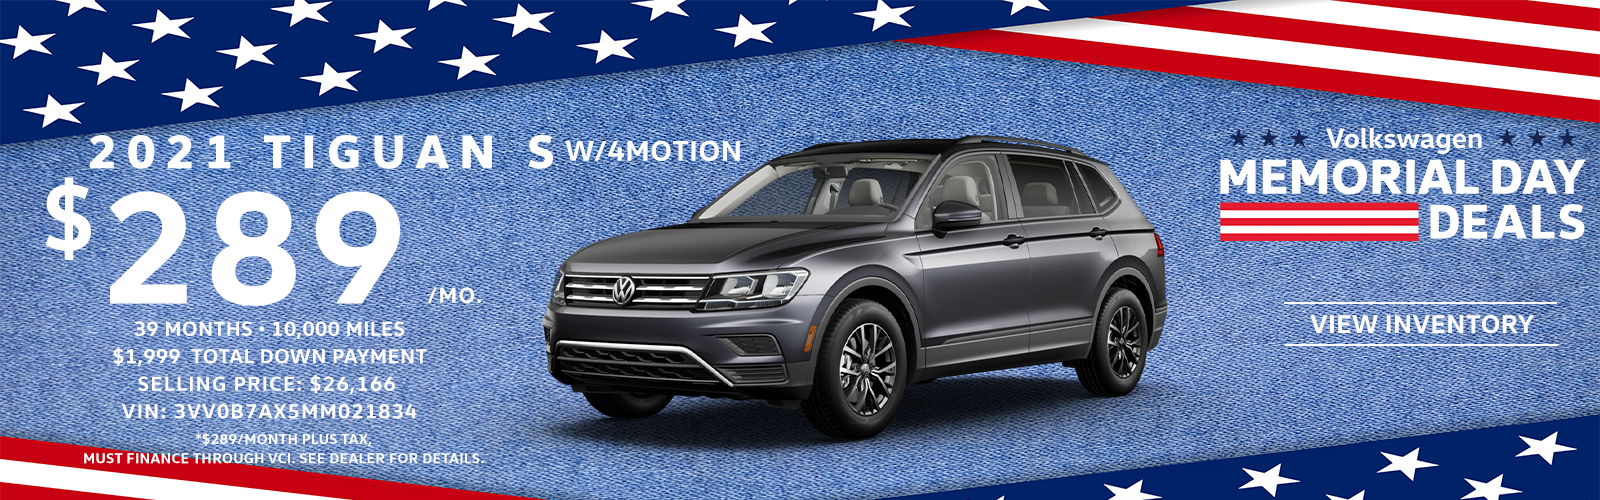 Tiguan-Banners-NorthPennVW-May2021-01